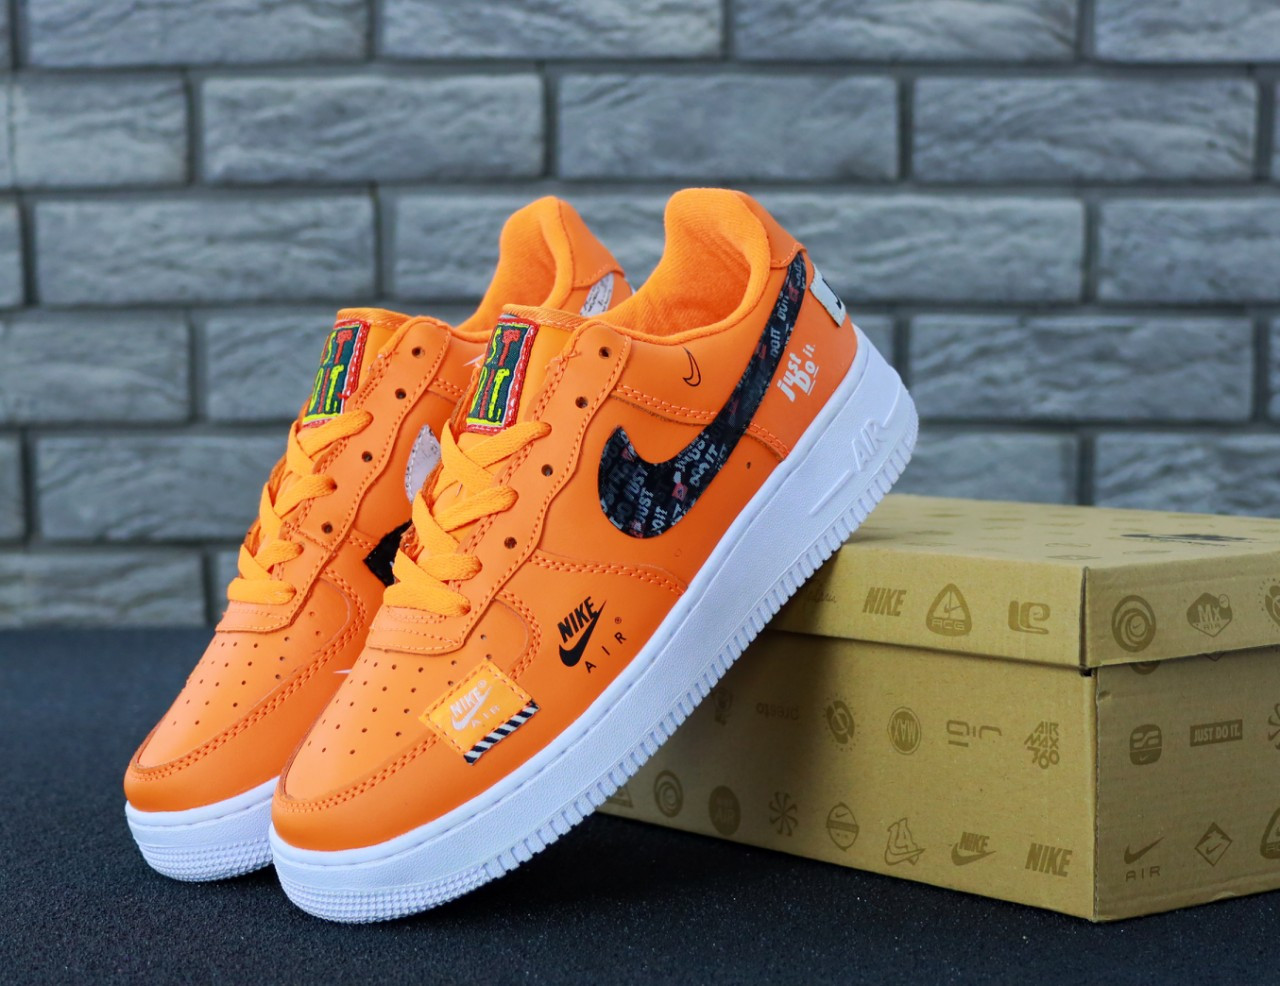 bc5968638835cd Кроссовки мужские Nike Air Force 1 Low Just Do It Pack Orange/White Реплика